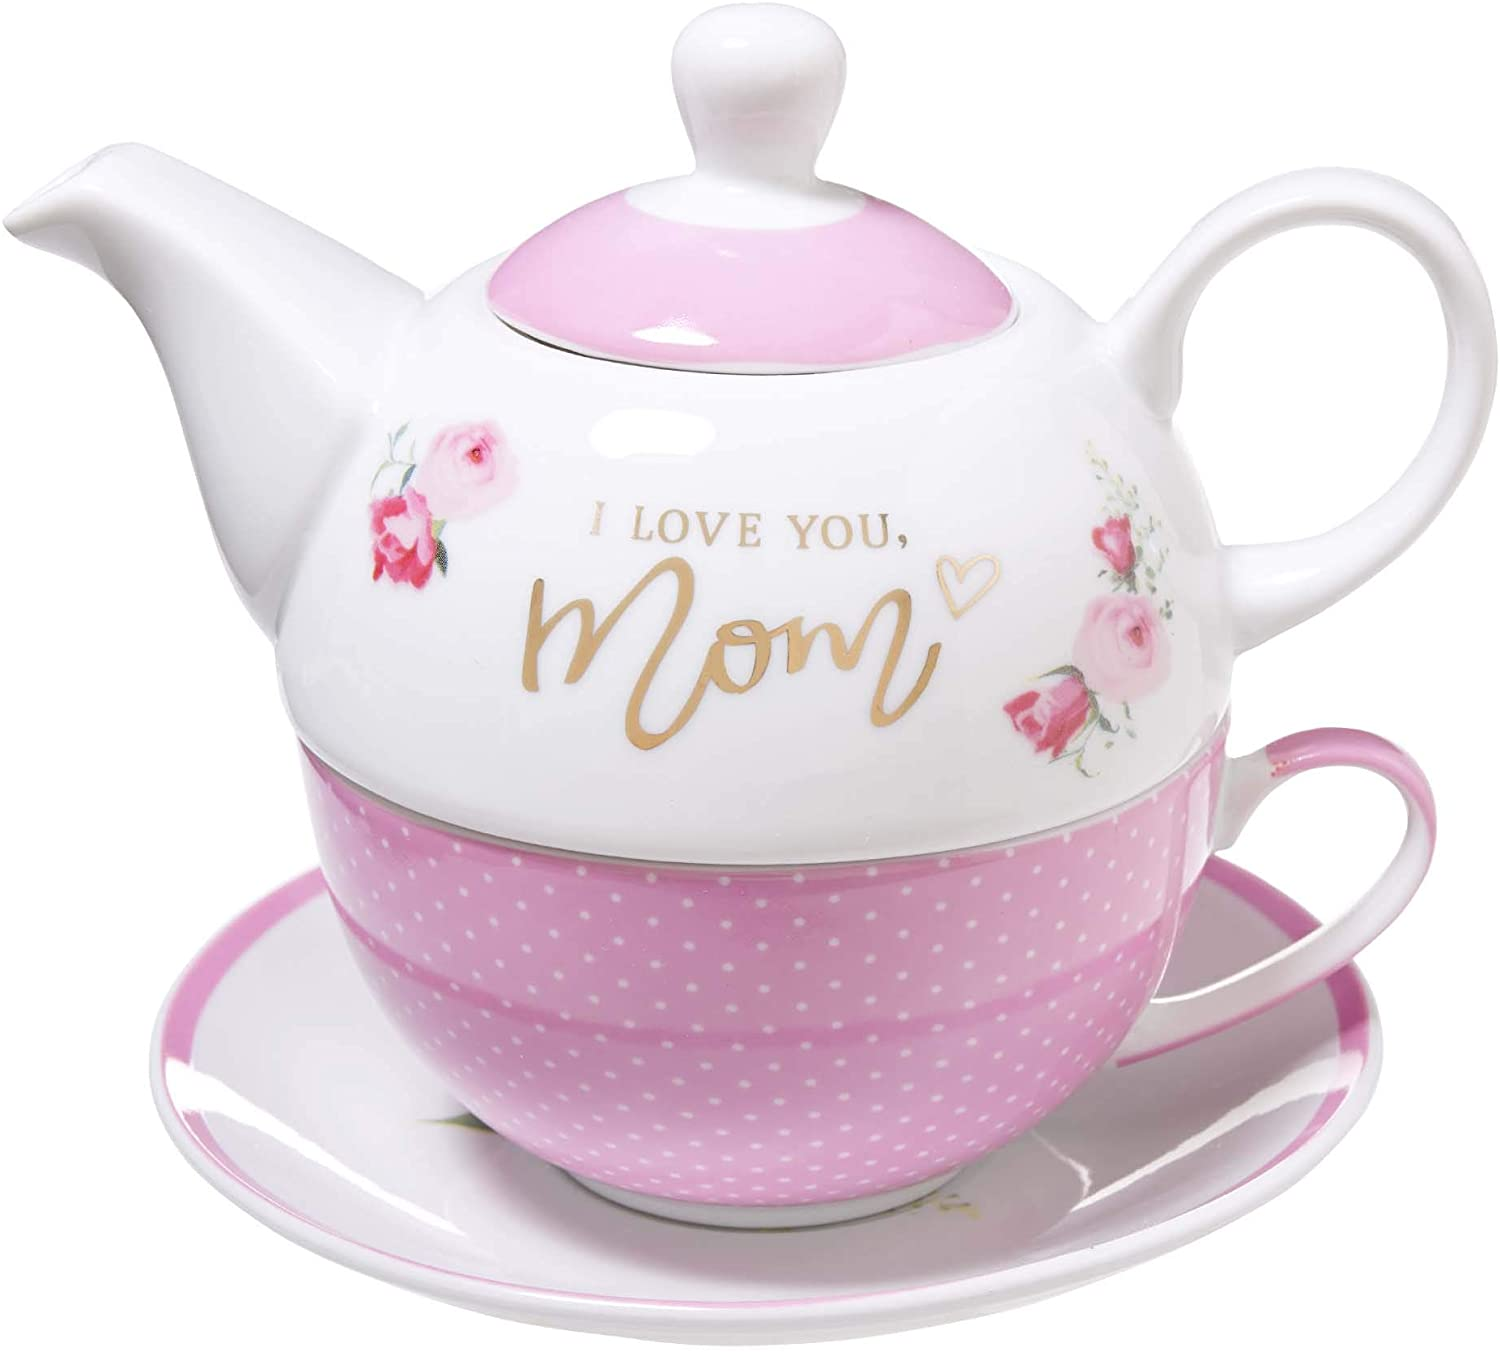 Ceramic Teapot Set | I Love You Mom - Proverbs 31:29 | Pink Flowers Tea For One Set with Tea Cup and Saucer